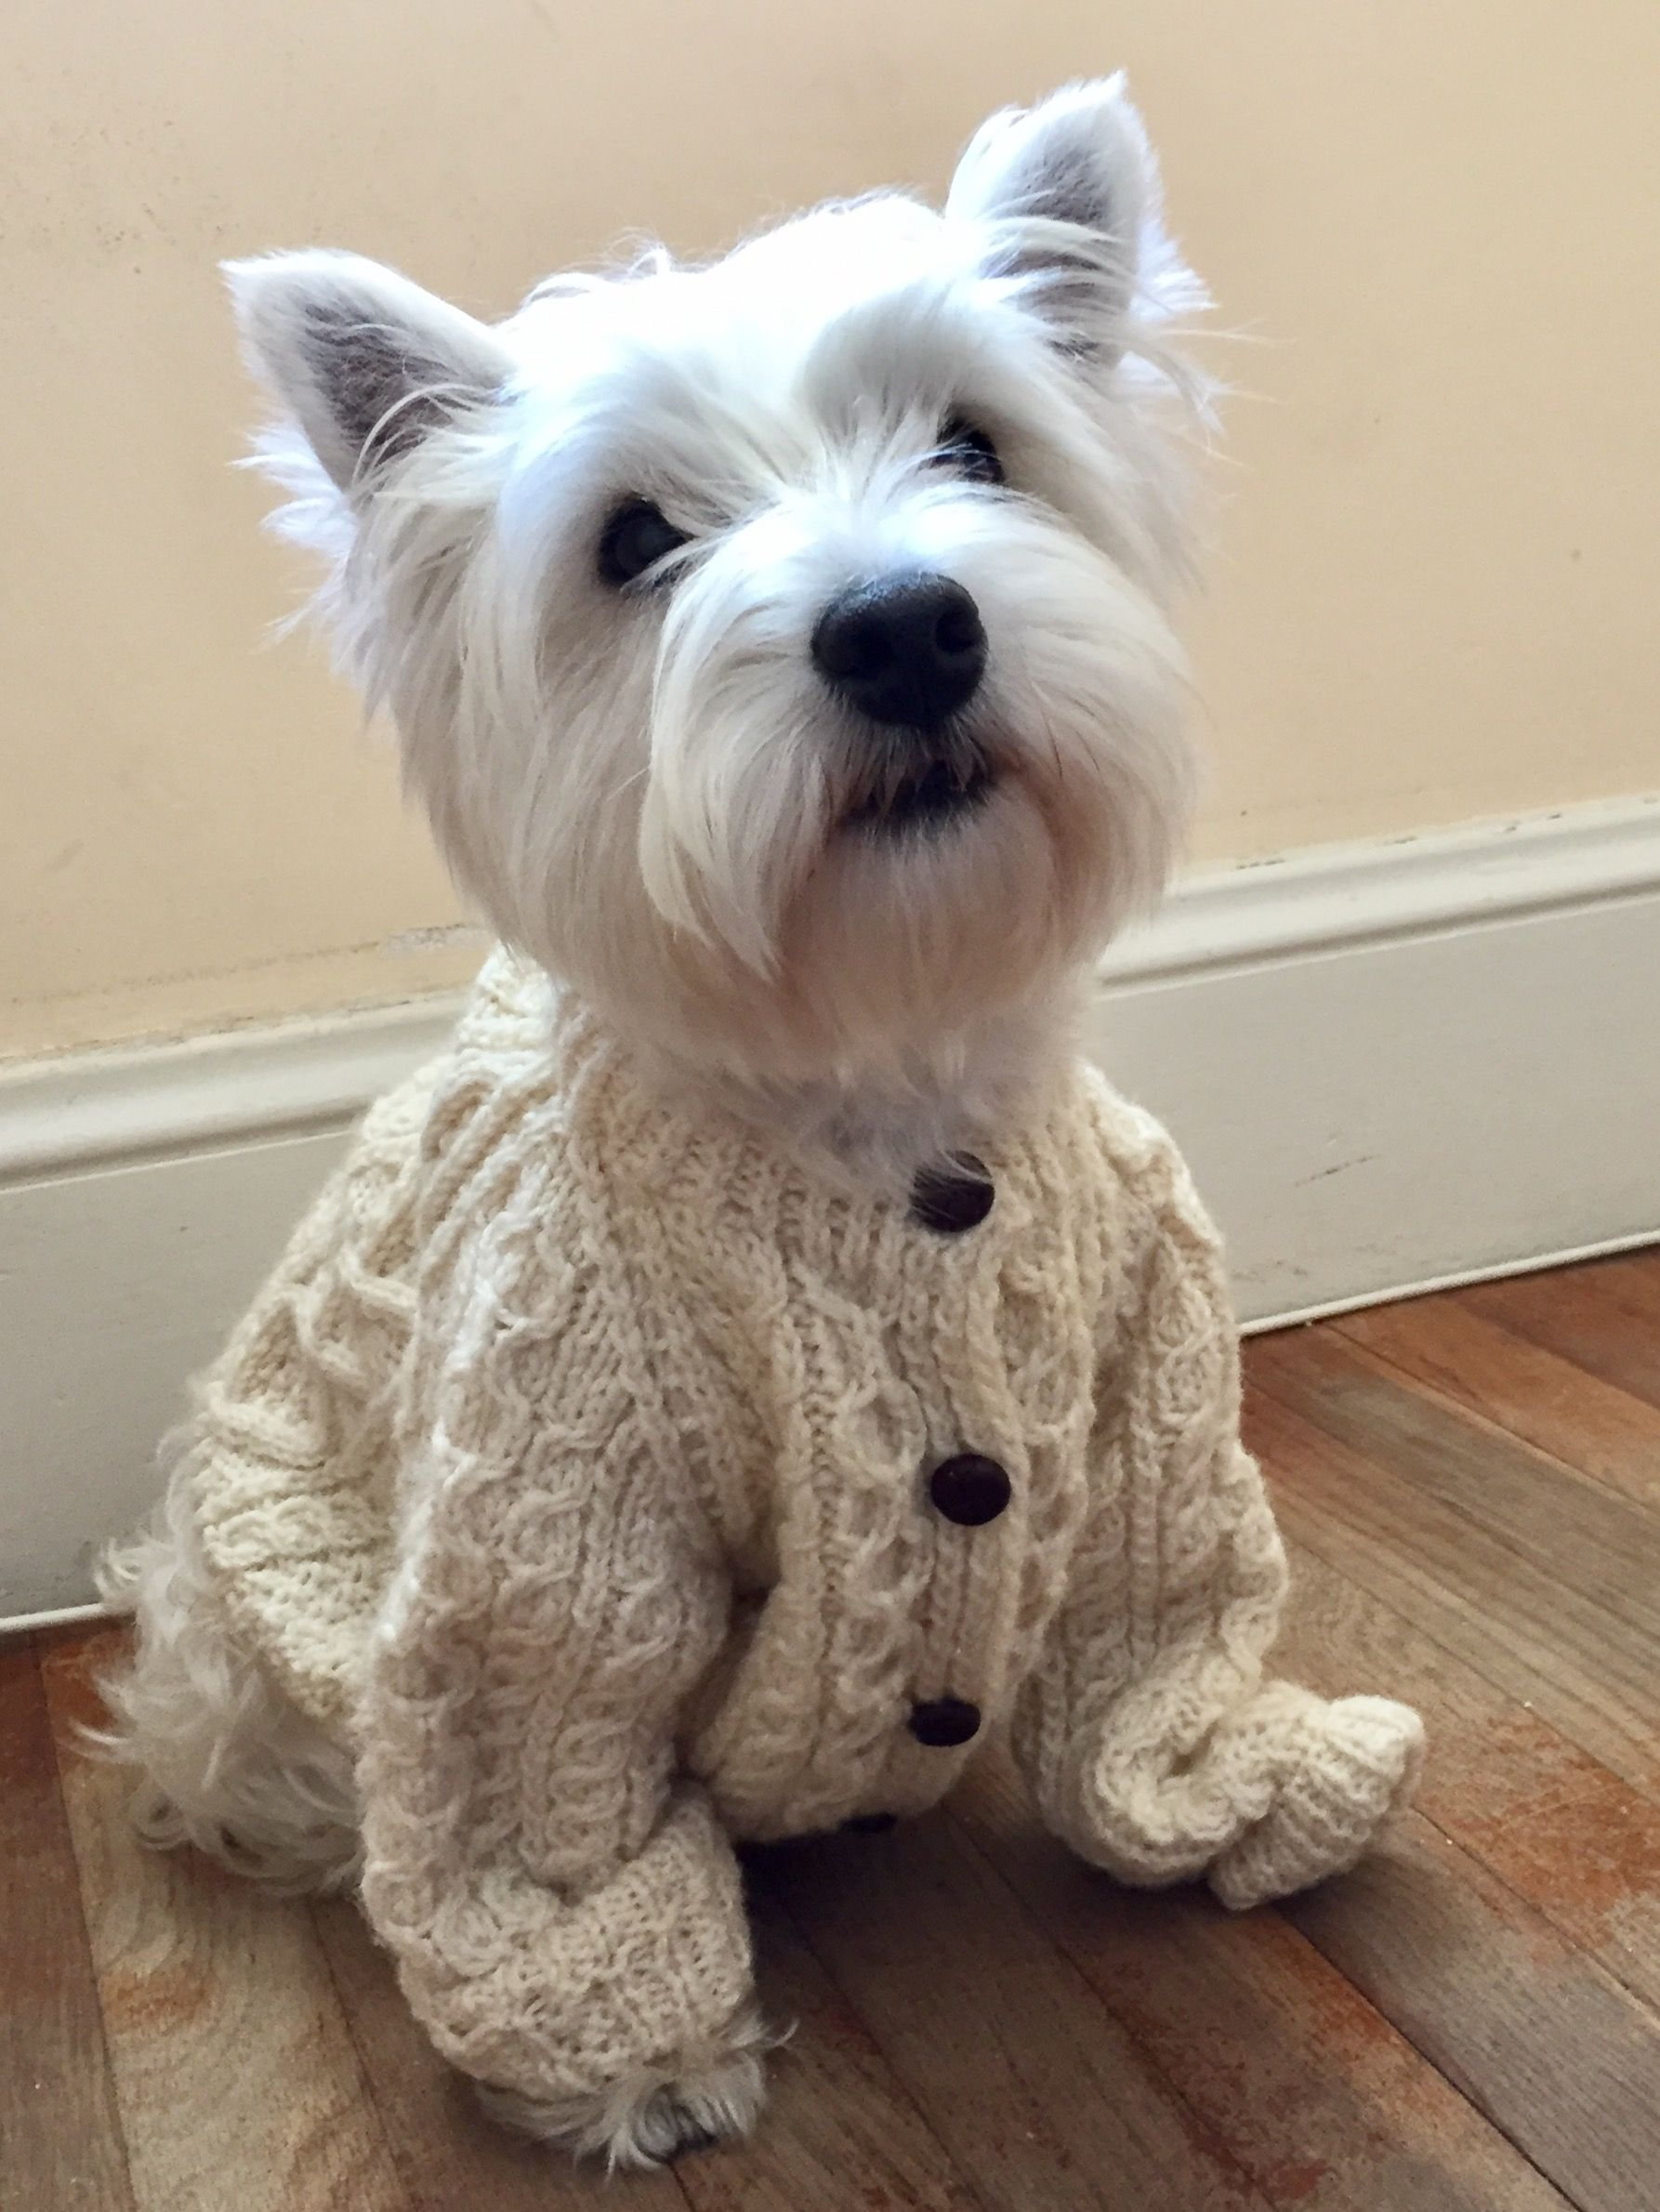 Great Sweater Unfortunately Hubby Won T Allow Clothes On Our Westie Cute Animals Baby Dogs Westie Puppies